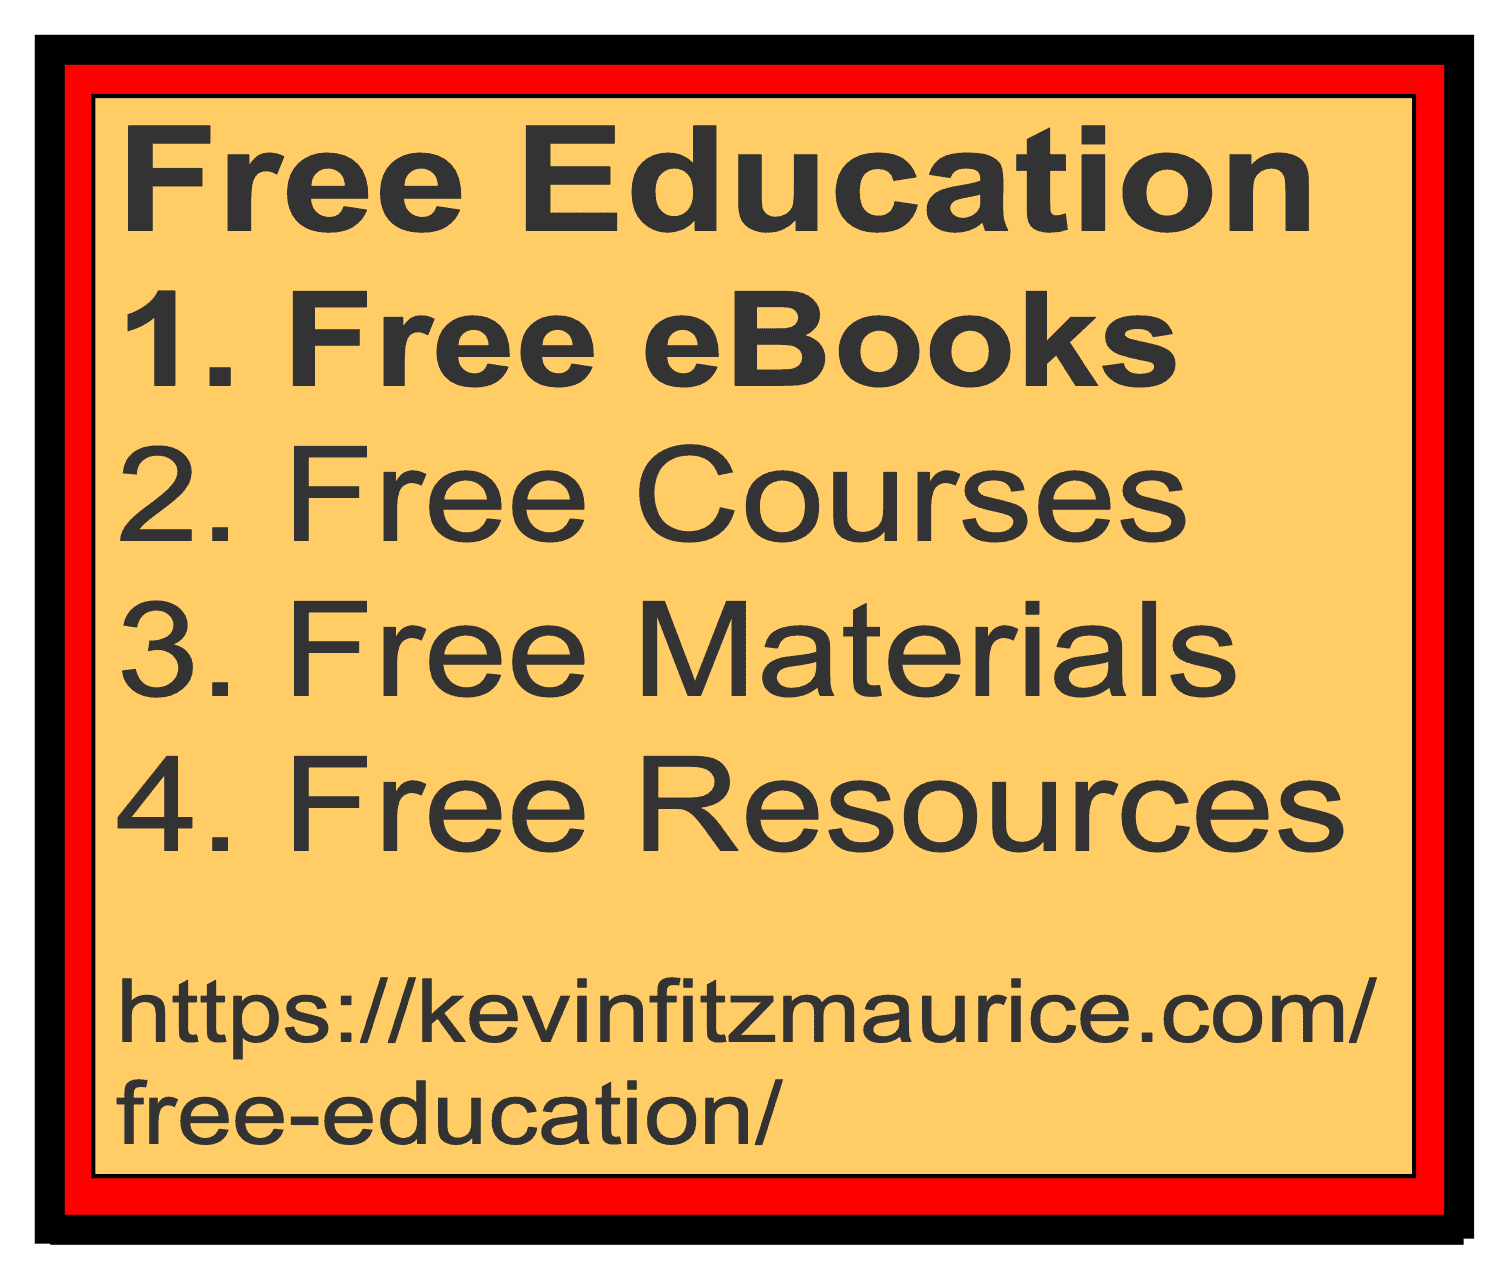 Free Education Lists for eBooks